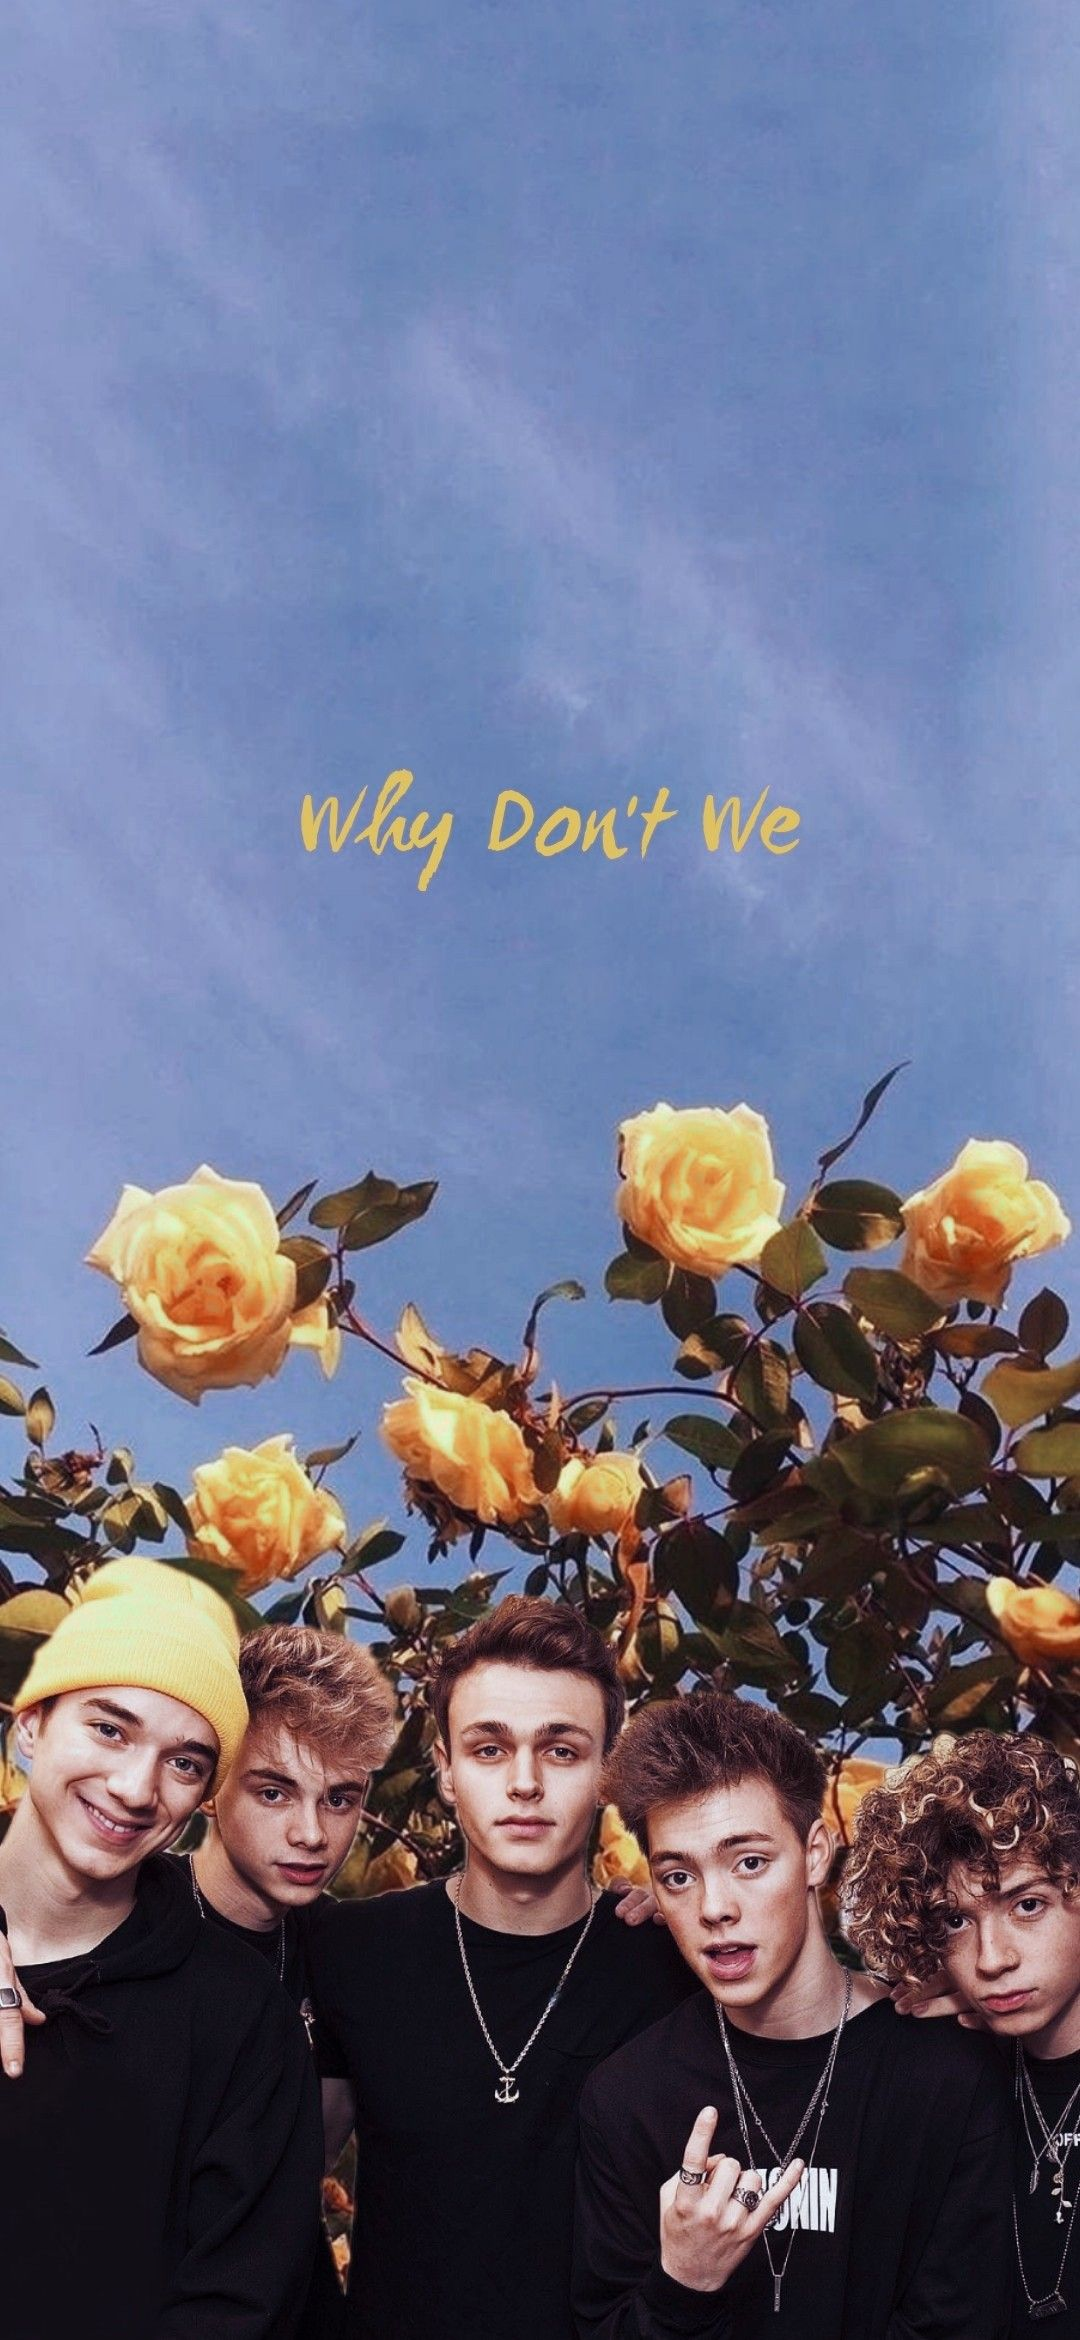 Why Don T We Wdw Why Dont We Boys Aesthetic Wallpapers